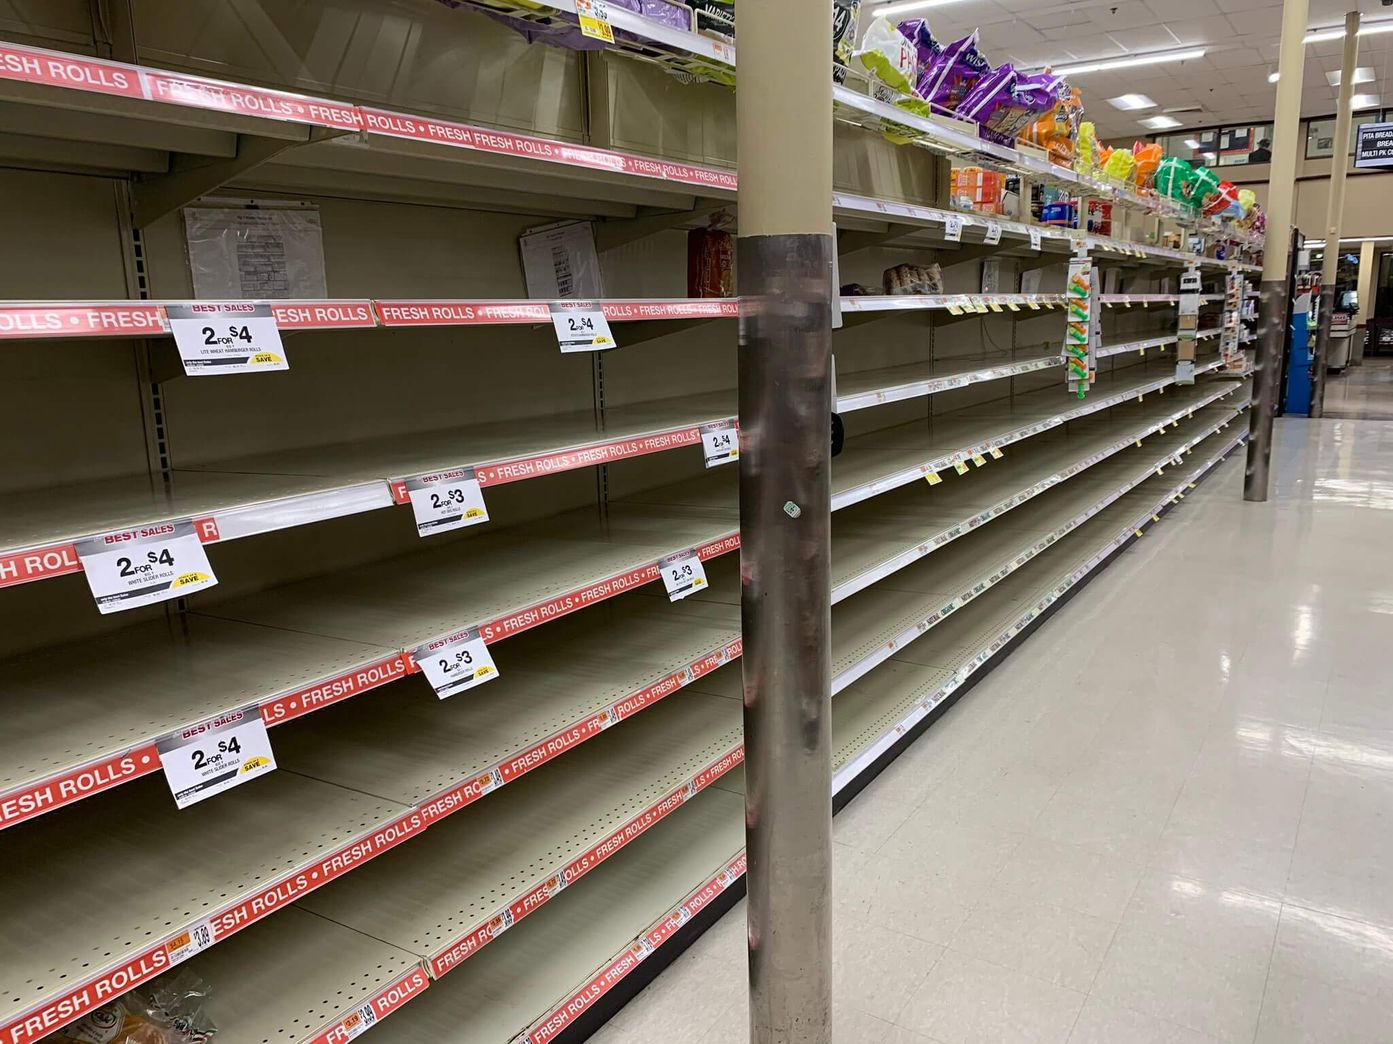 Empty shelves at a grocery store during the height of Covid panic buying, March 2020 [Unioncrate]